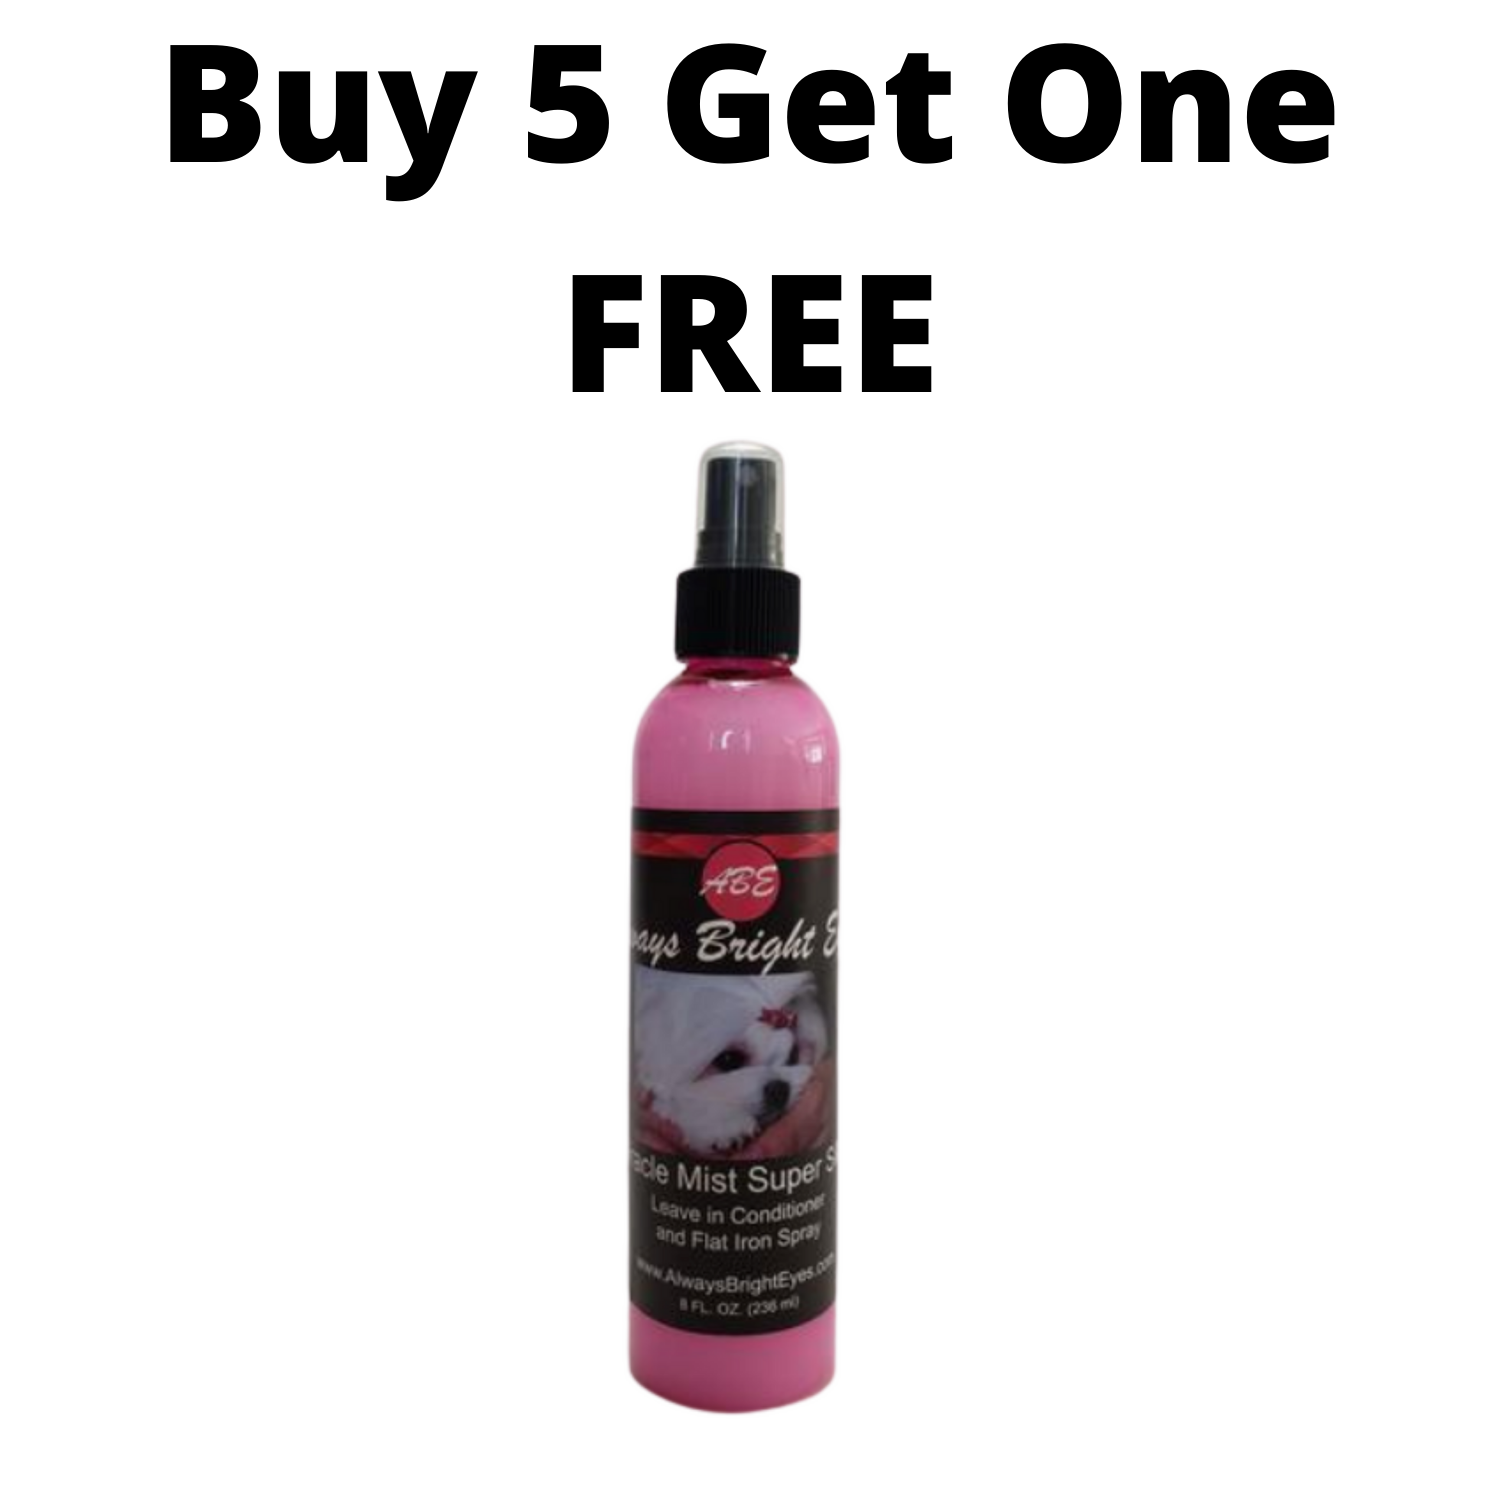 ABE - Miracle Mist Super Silk Shine Spray - Buy 5 Get One FREE - Distributors price